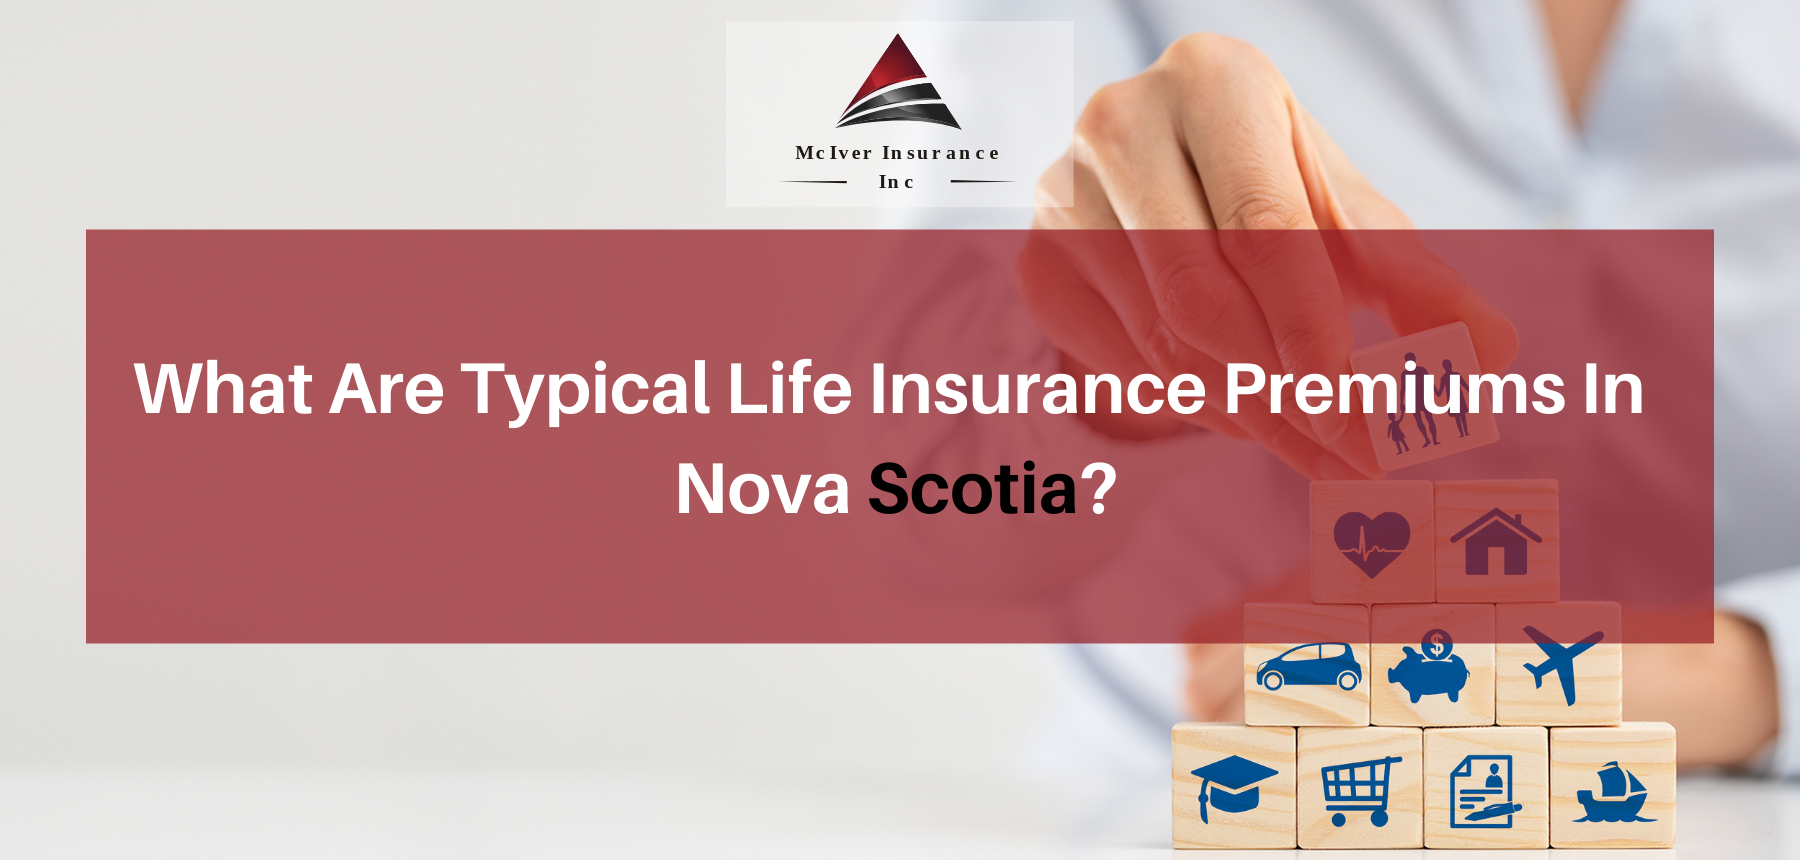 What Are Typical Life Insurance Premiums In Nova Scotia